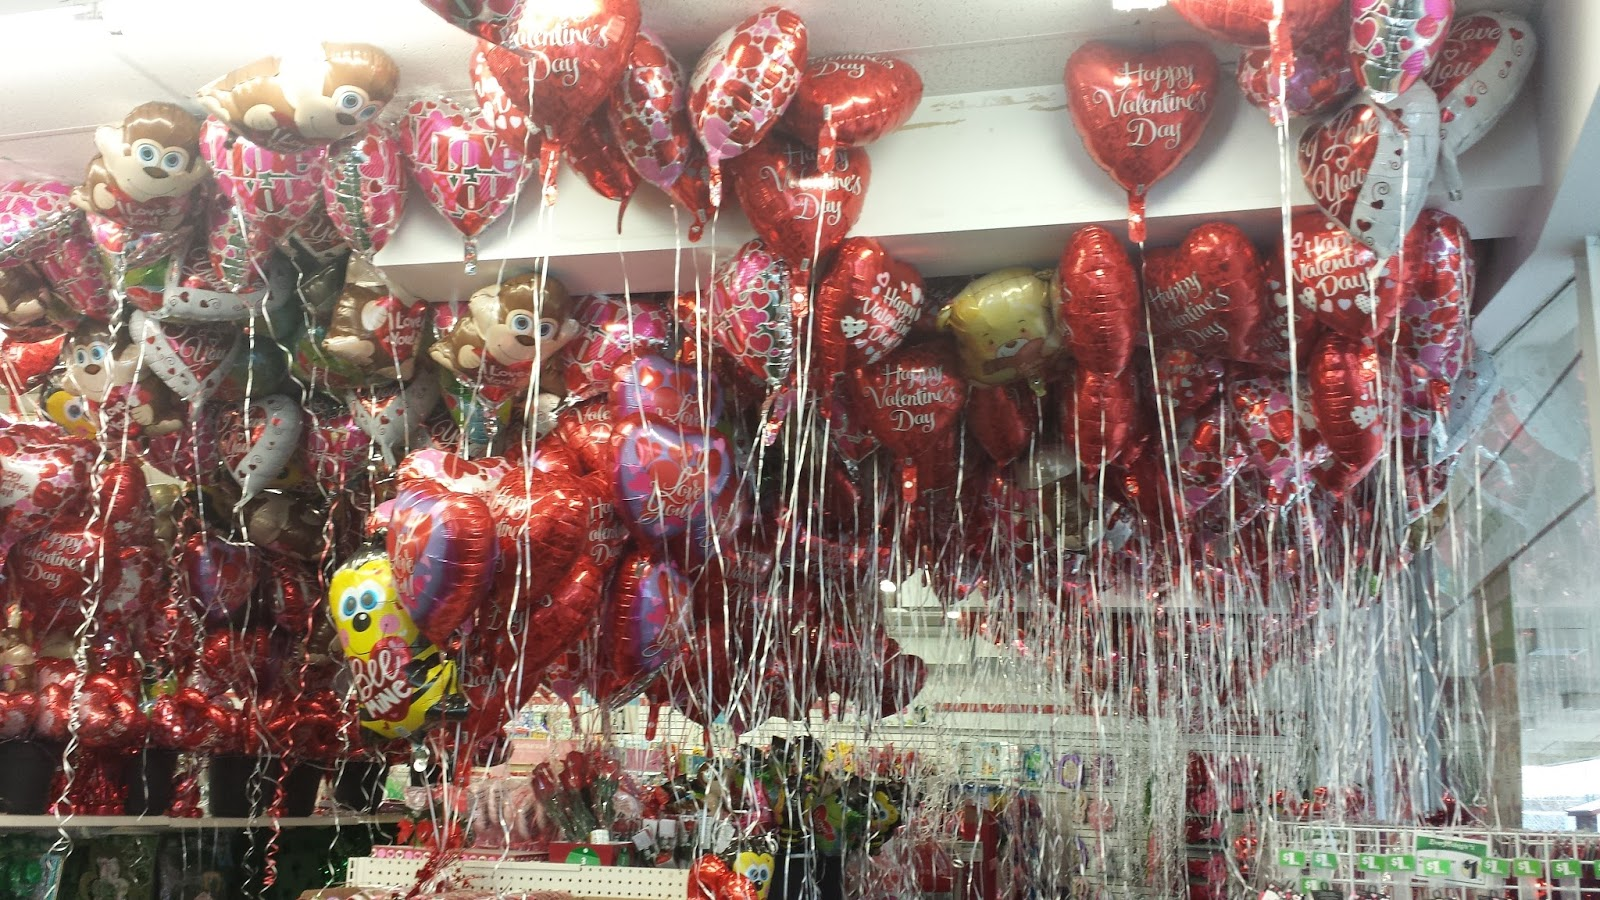 Dollar Tree Balloons Pictures to Pin on Pinterest - PinsDaddy - photo#32